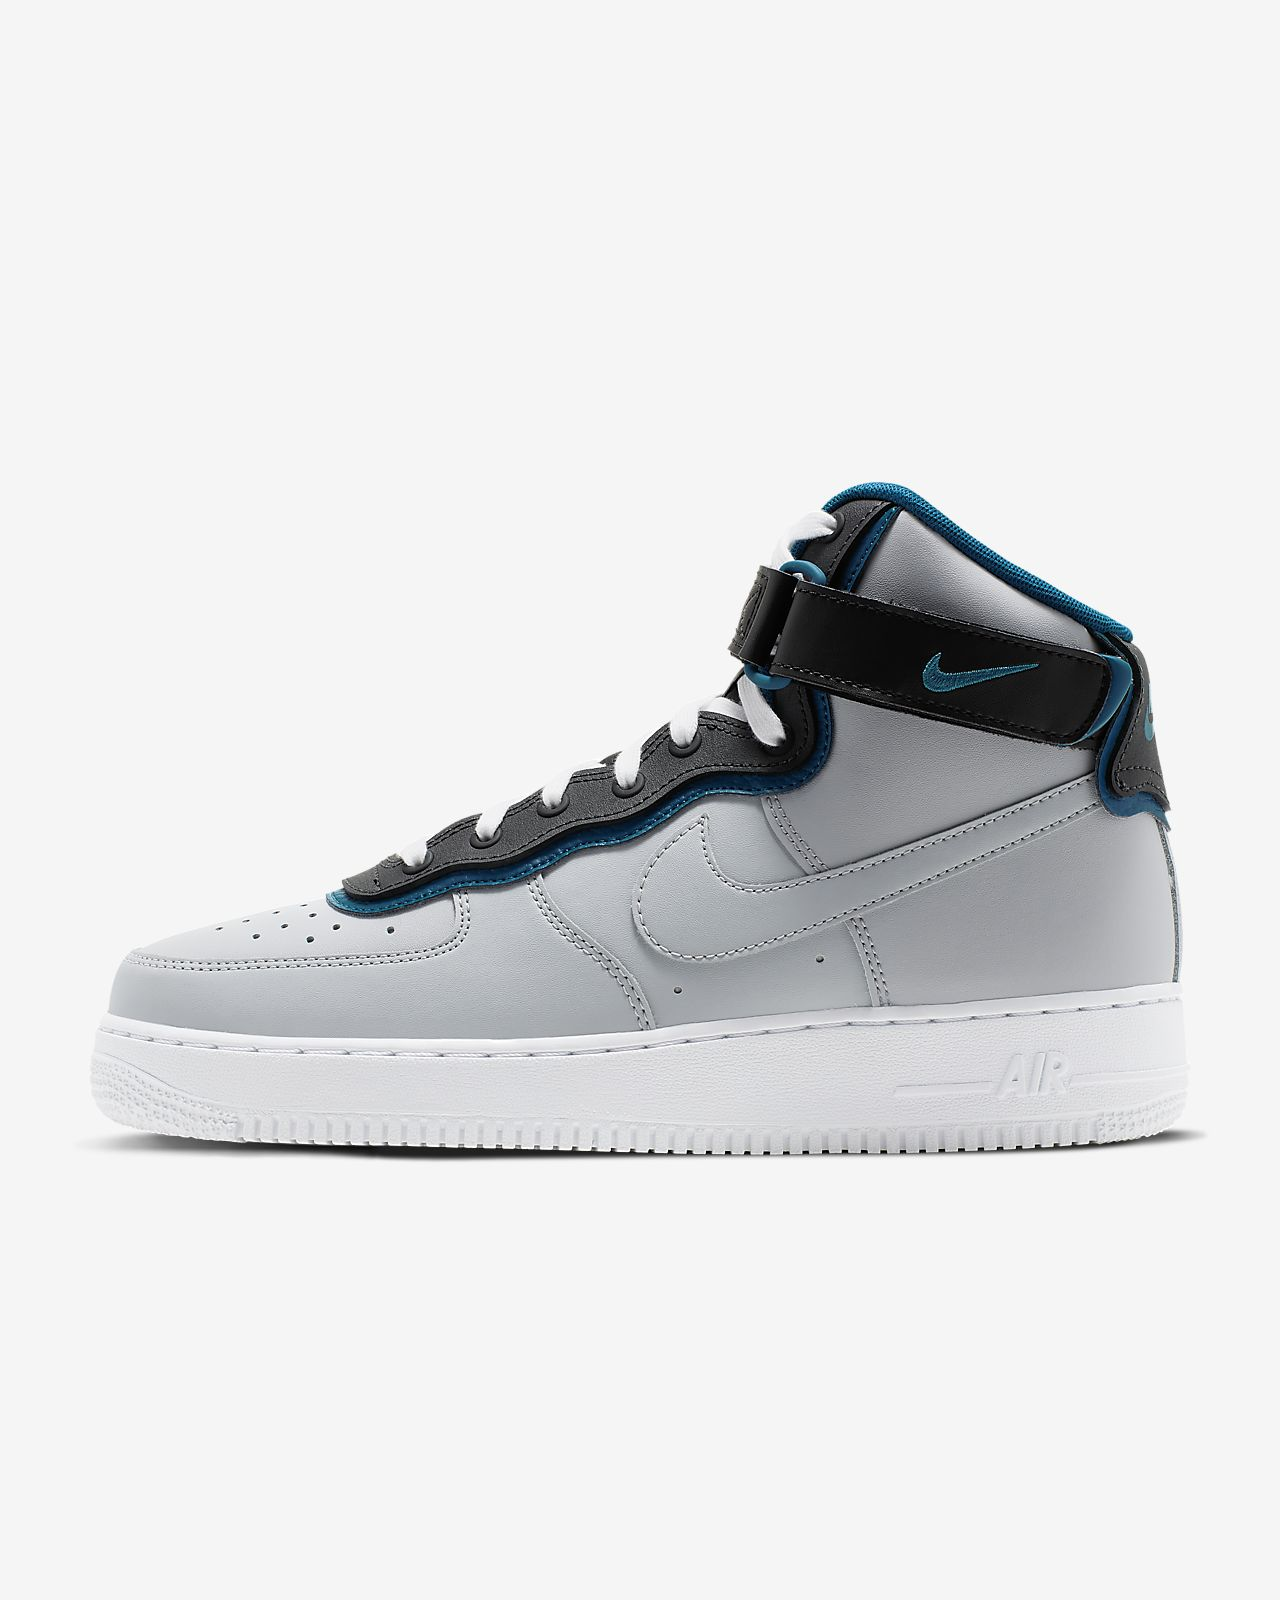 promo code 4a537 e9705 Nike Air Force 1 High '07 LV8 1 Men's Shoe